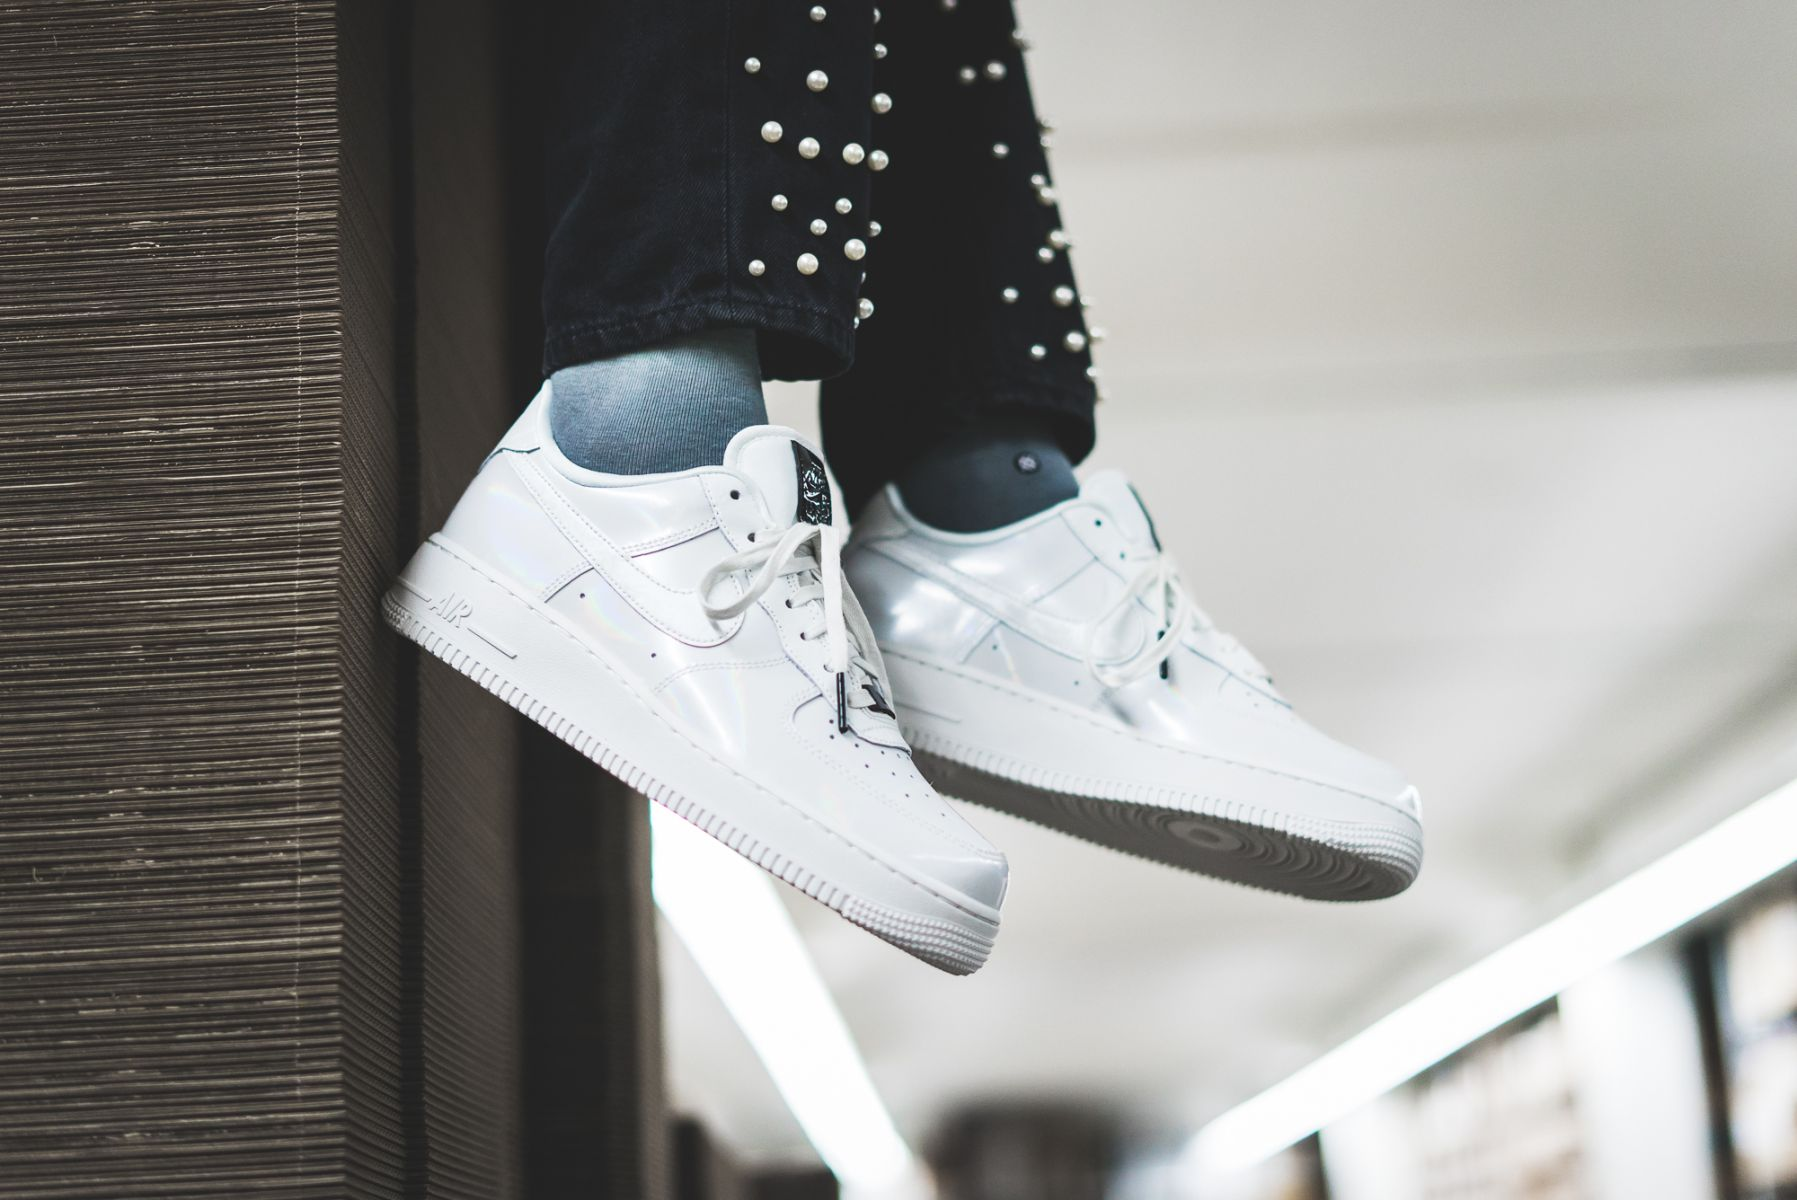 Is The Air Force 1 07 LX Nike's Most Glamorous Silhouette